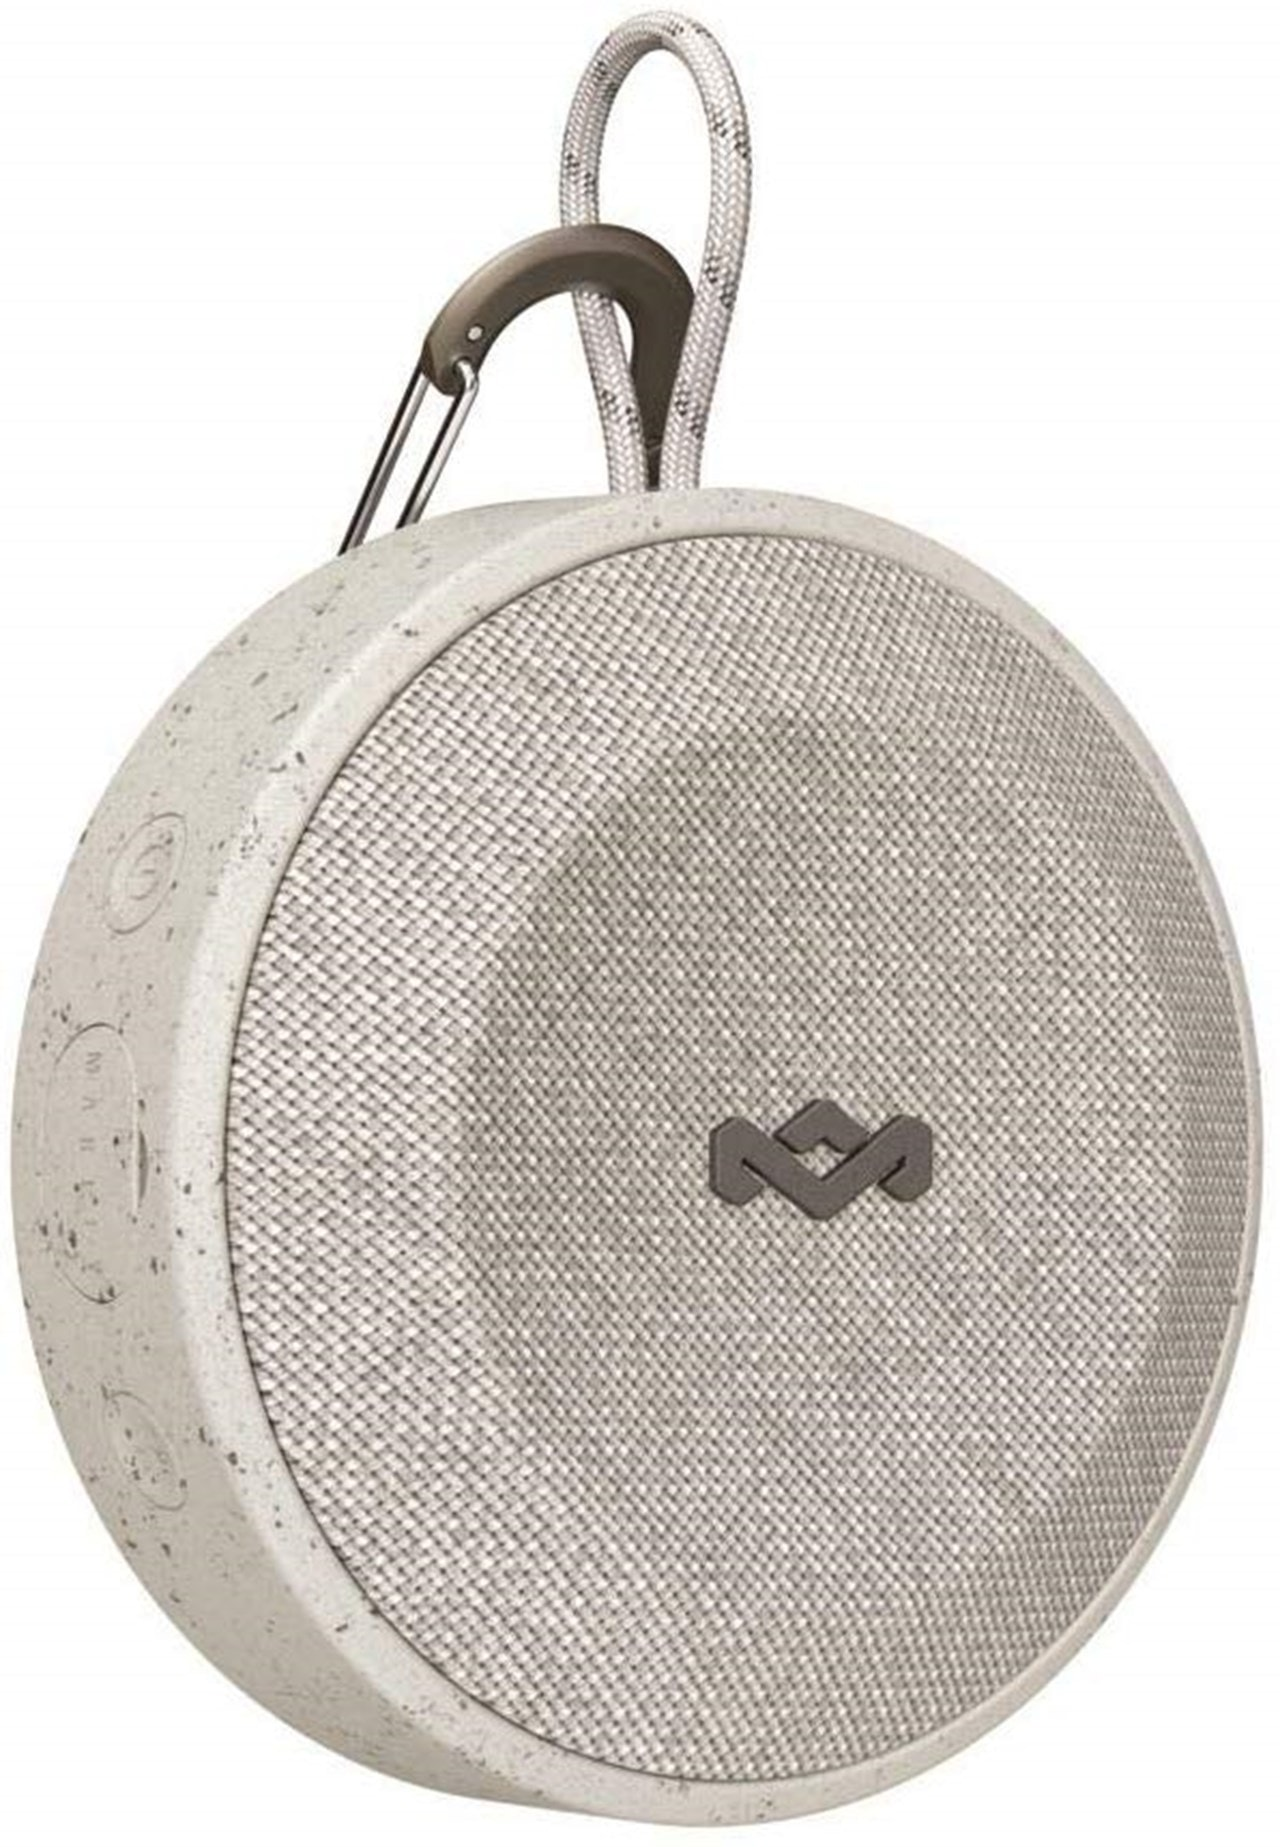 House Of Marley No Bounds Grey Bluetooth Speaker - 1